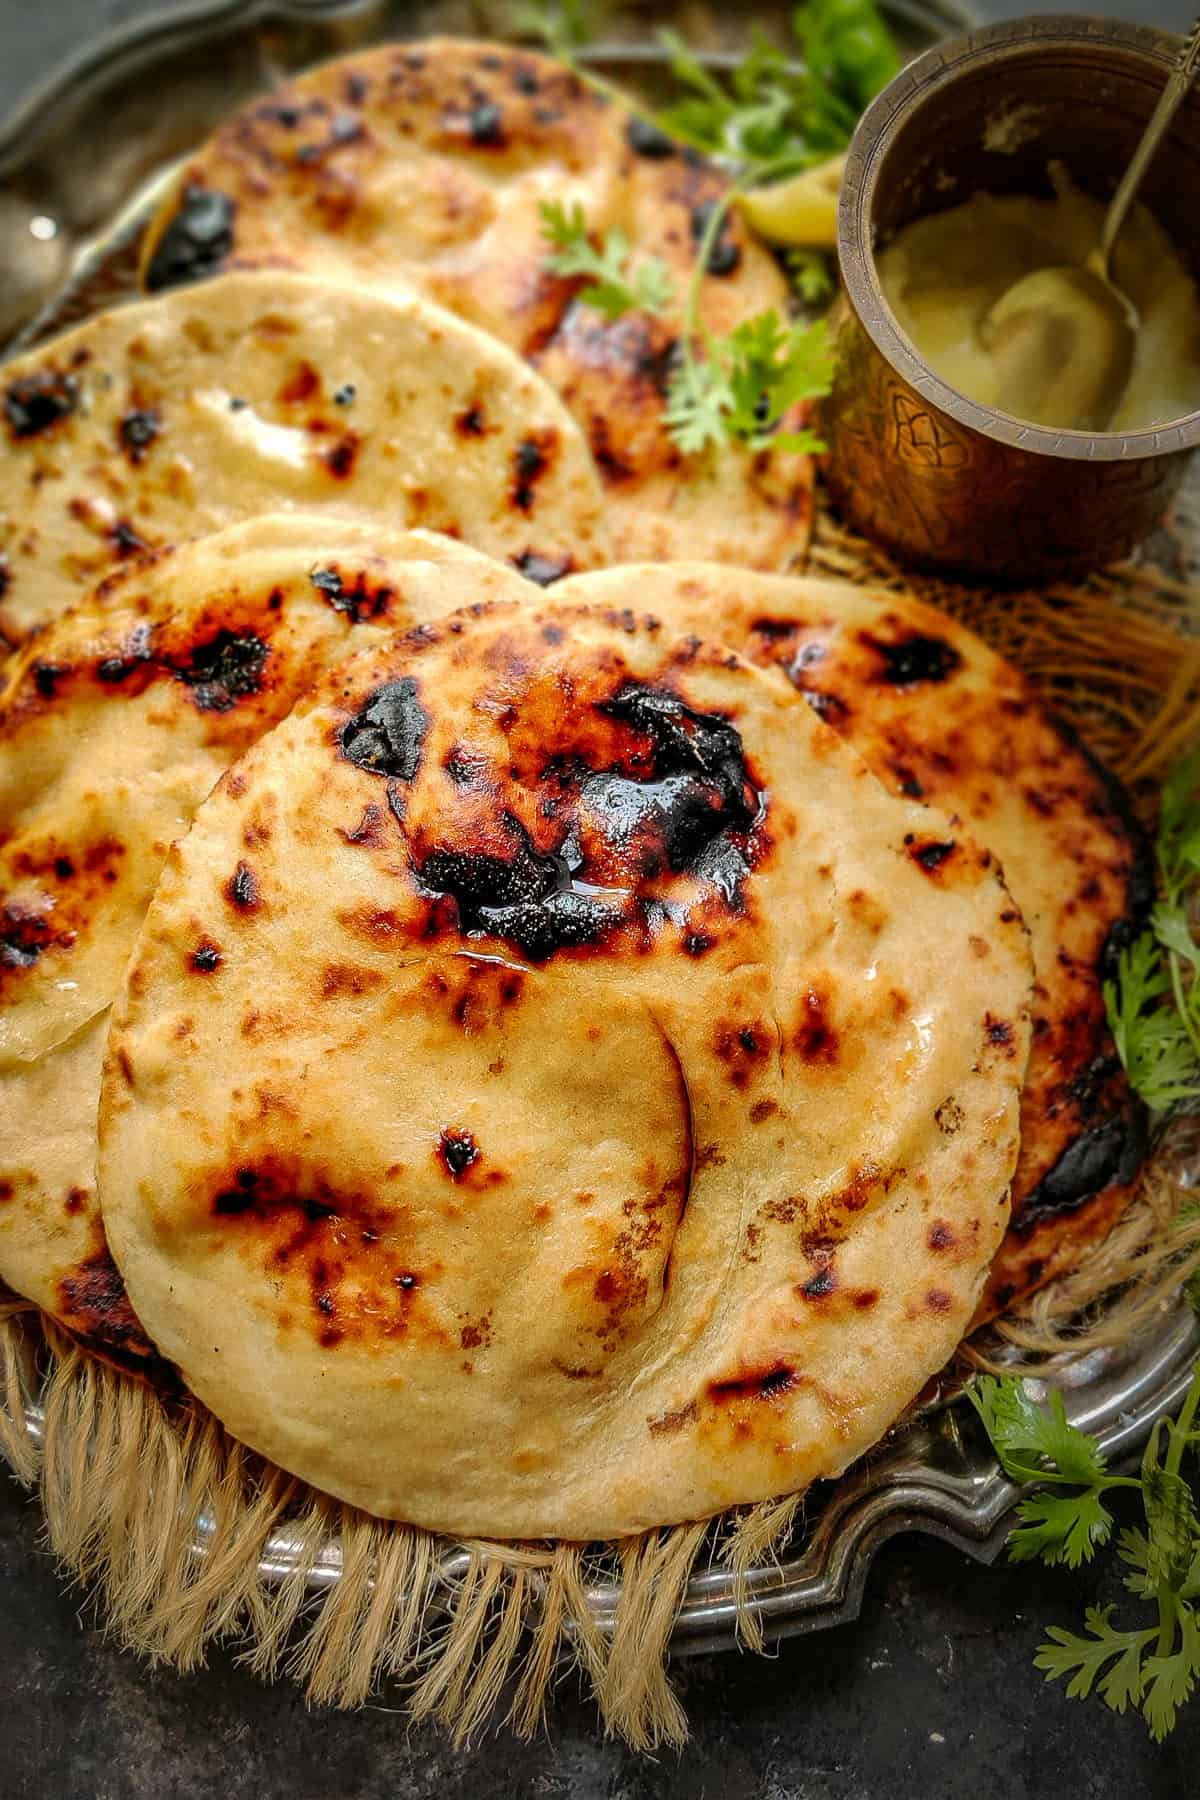 Tandoori Roti served on a plate.